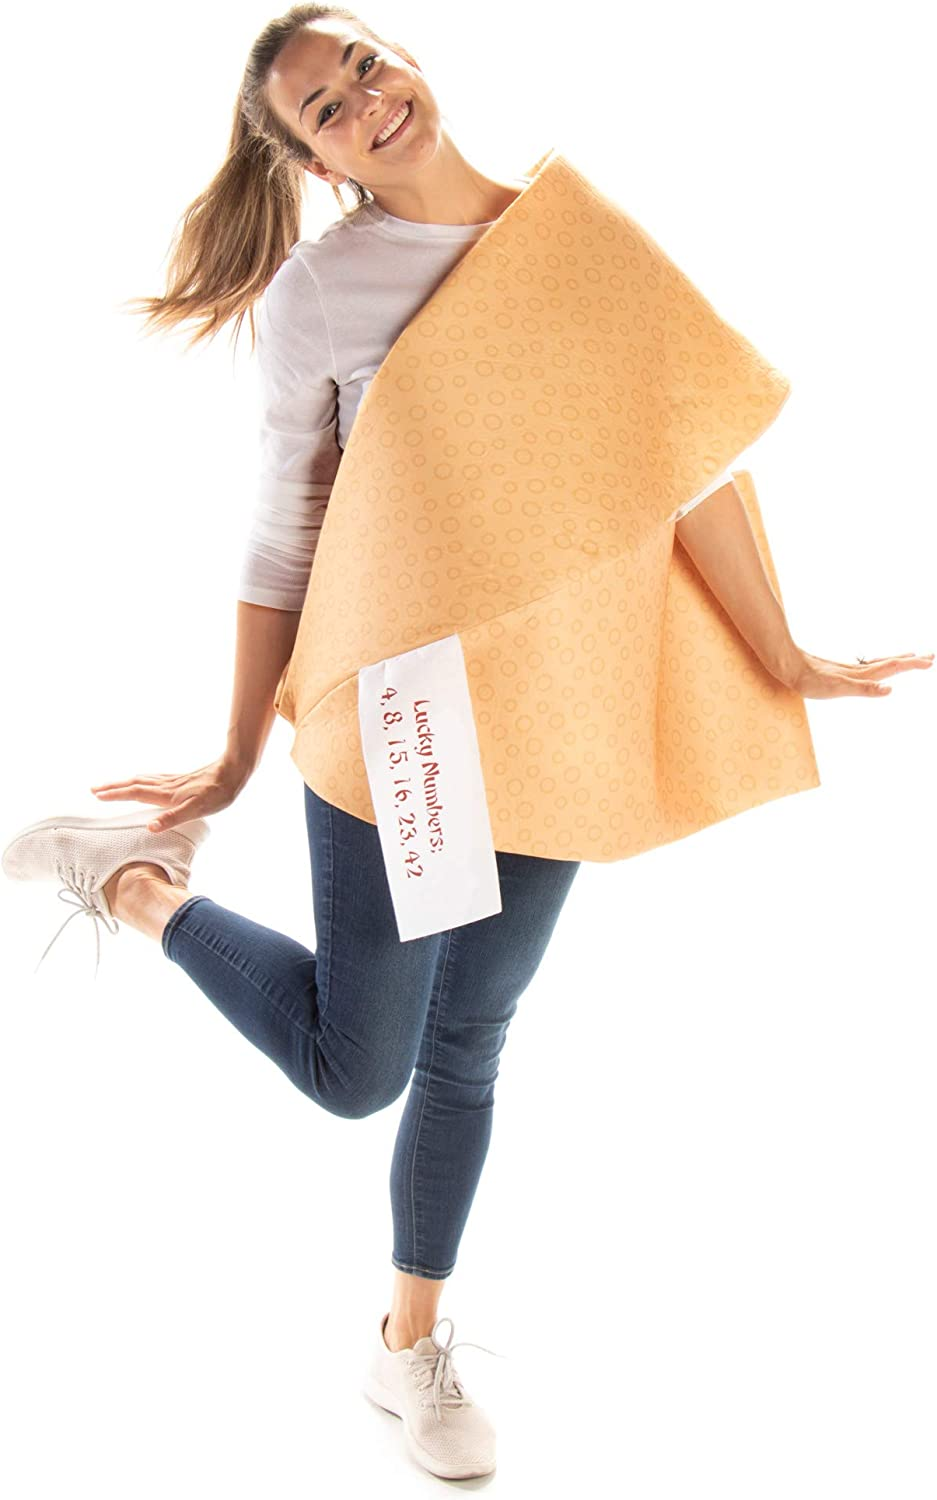 Fortune Cookie Halloween Costume - Funny Unisex One-Size Adult Fast Food Outfit